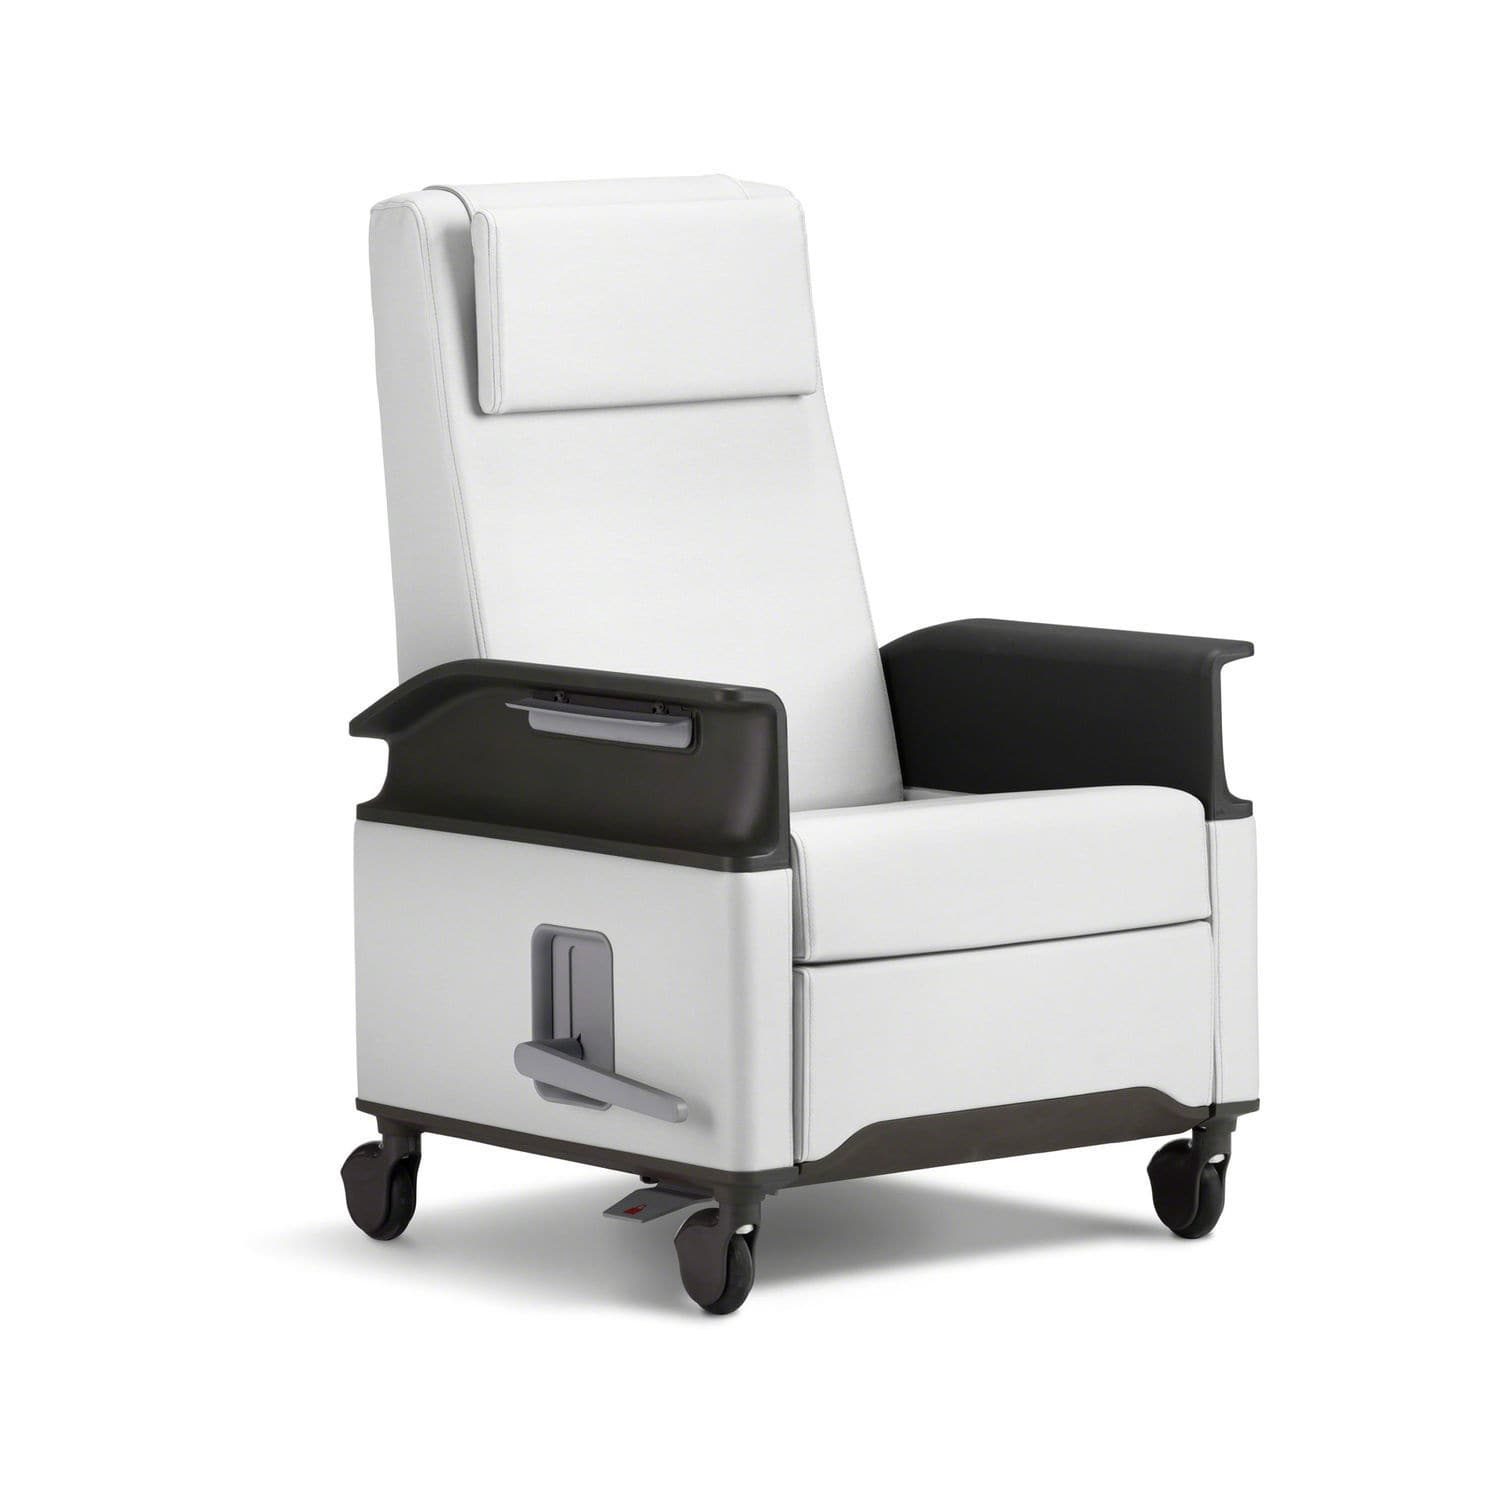 Reclining patient chair on casters manual Empath™ Nurture